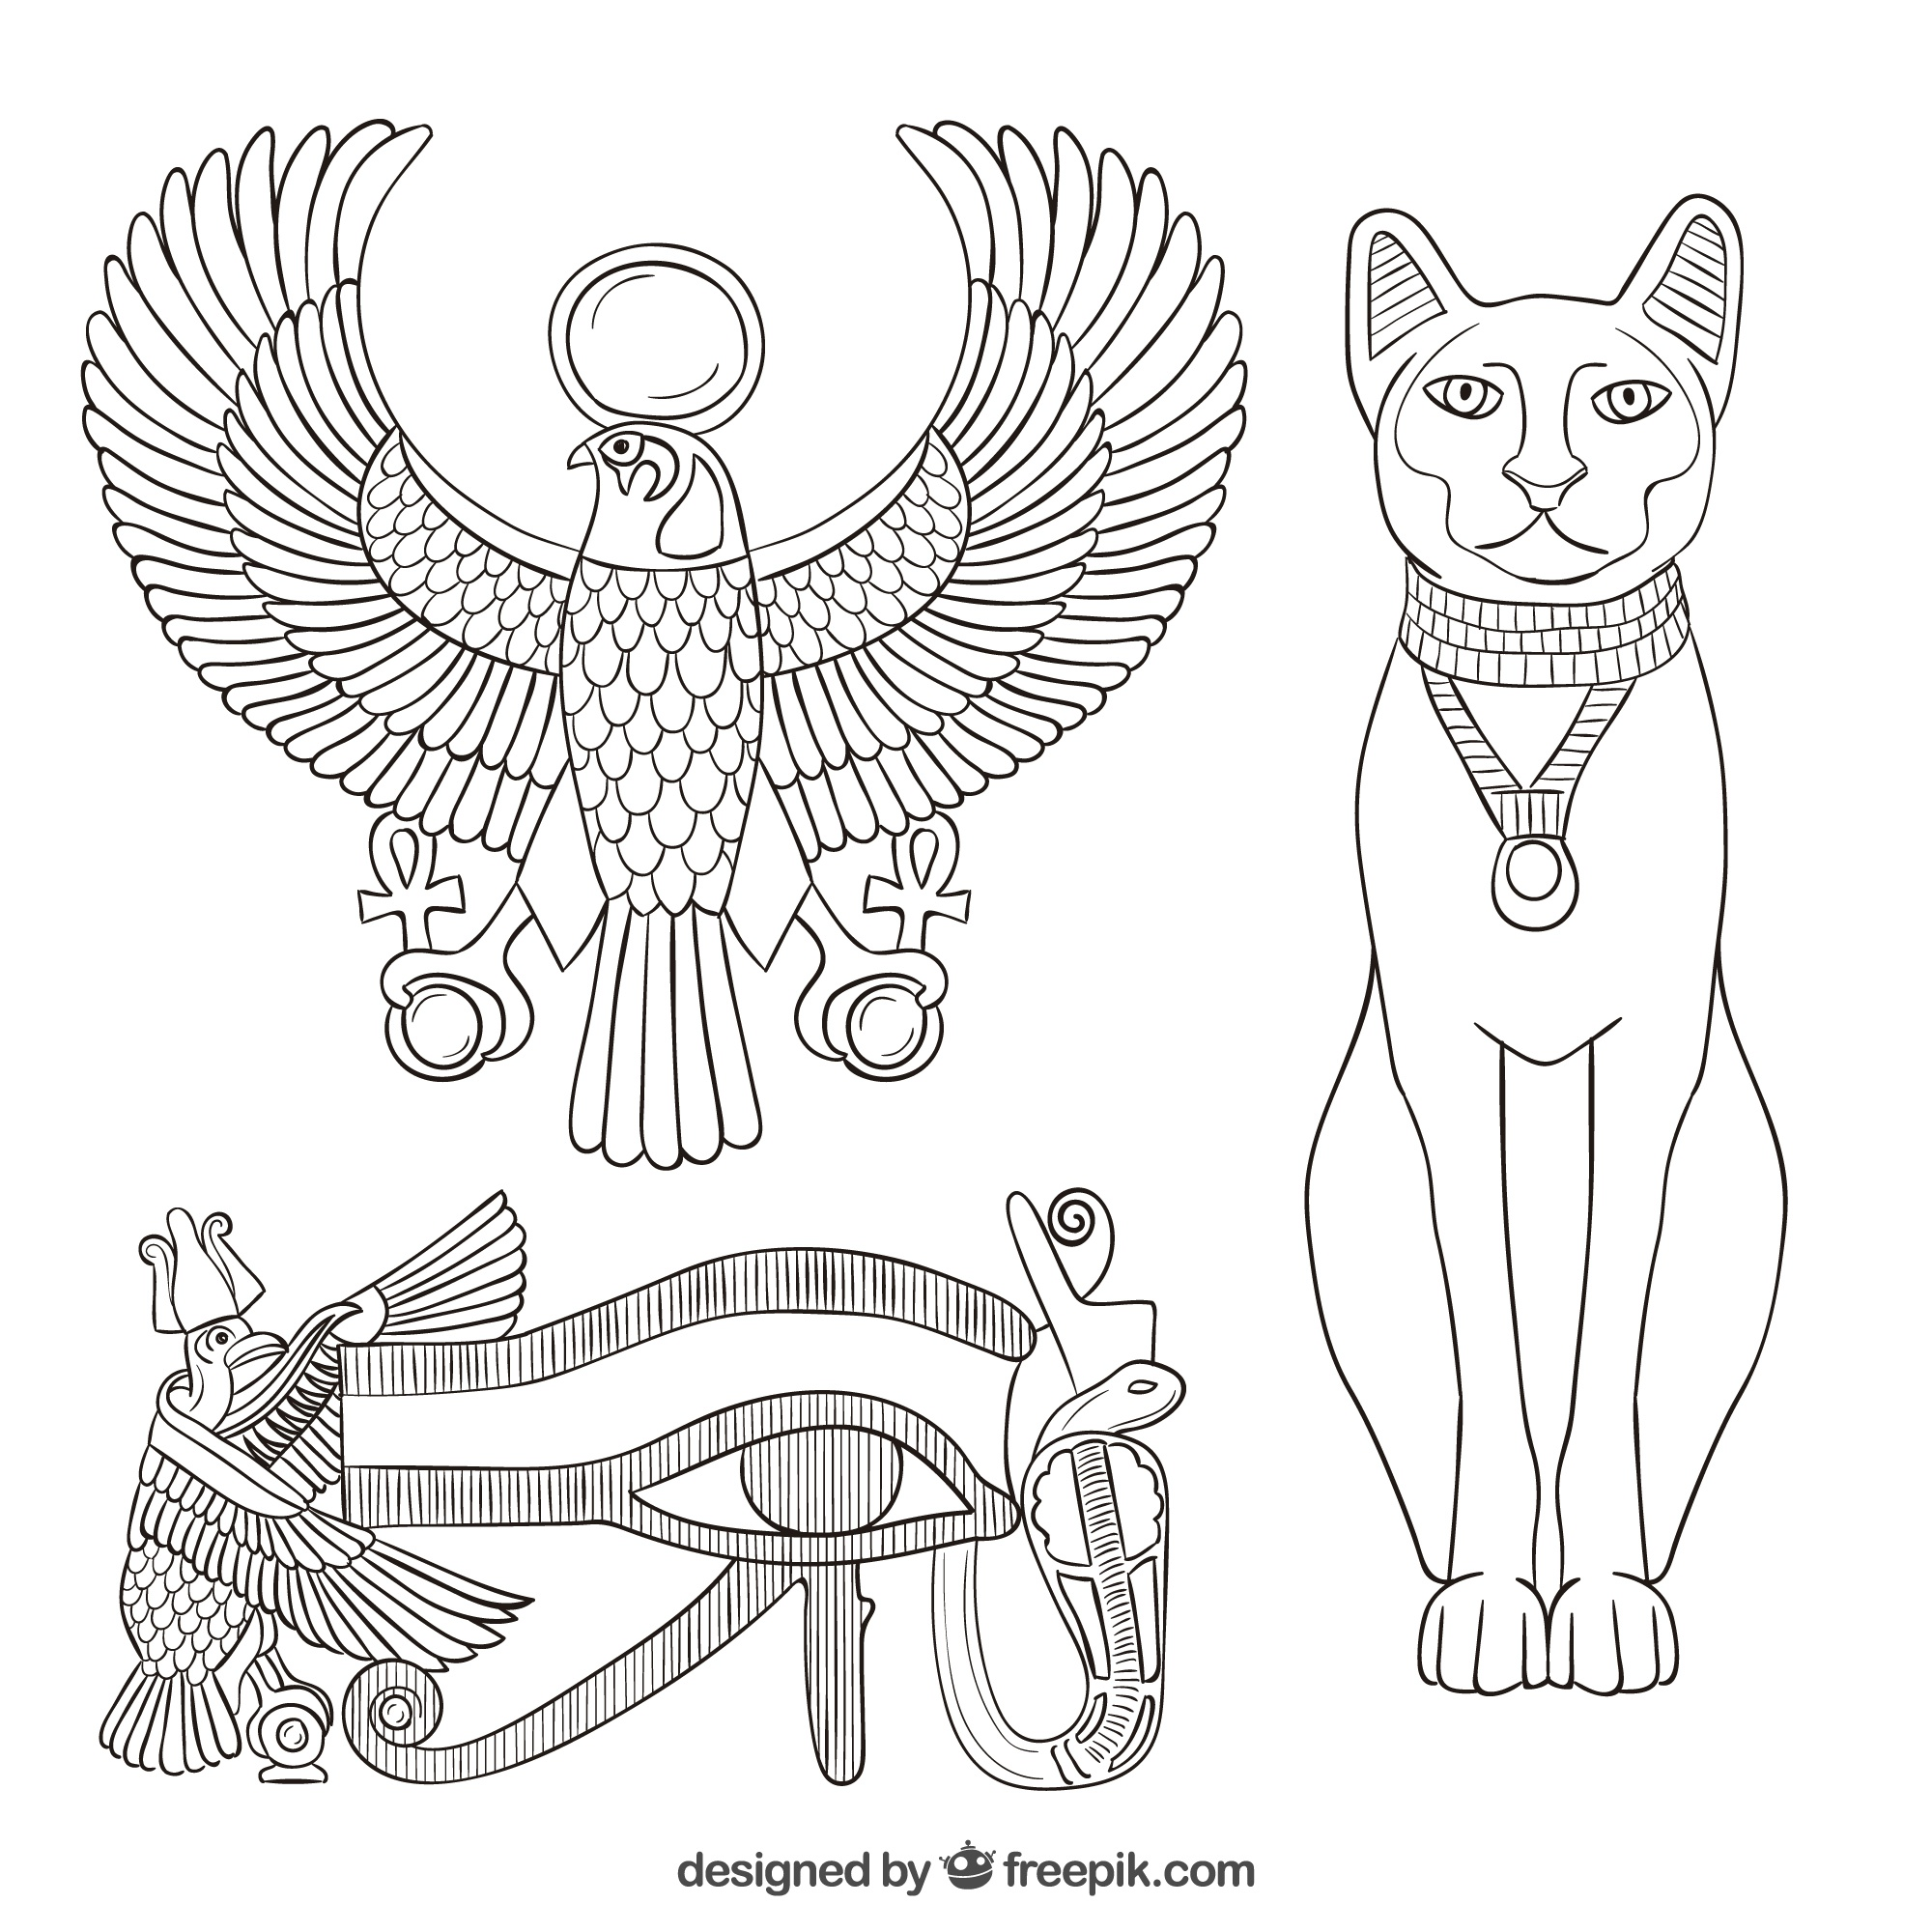 Elements of the ancient egypt